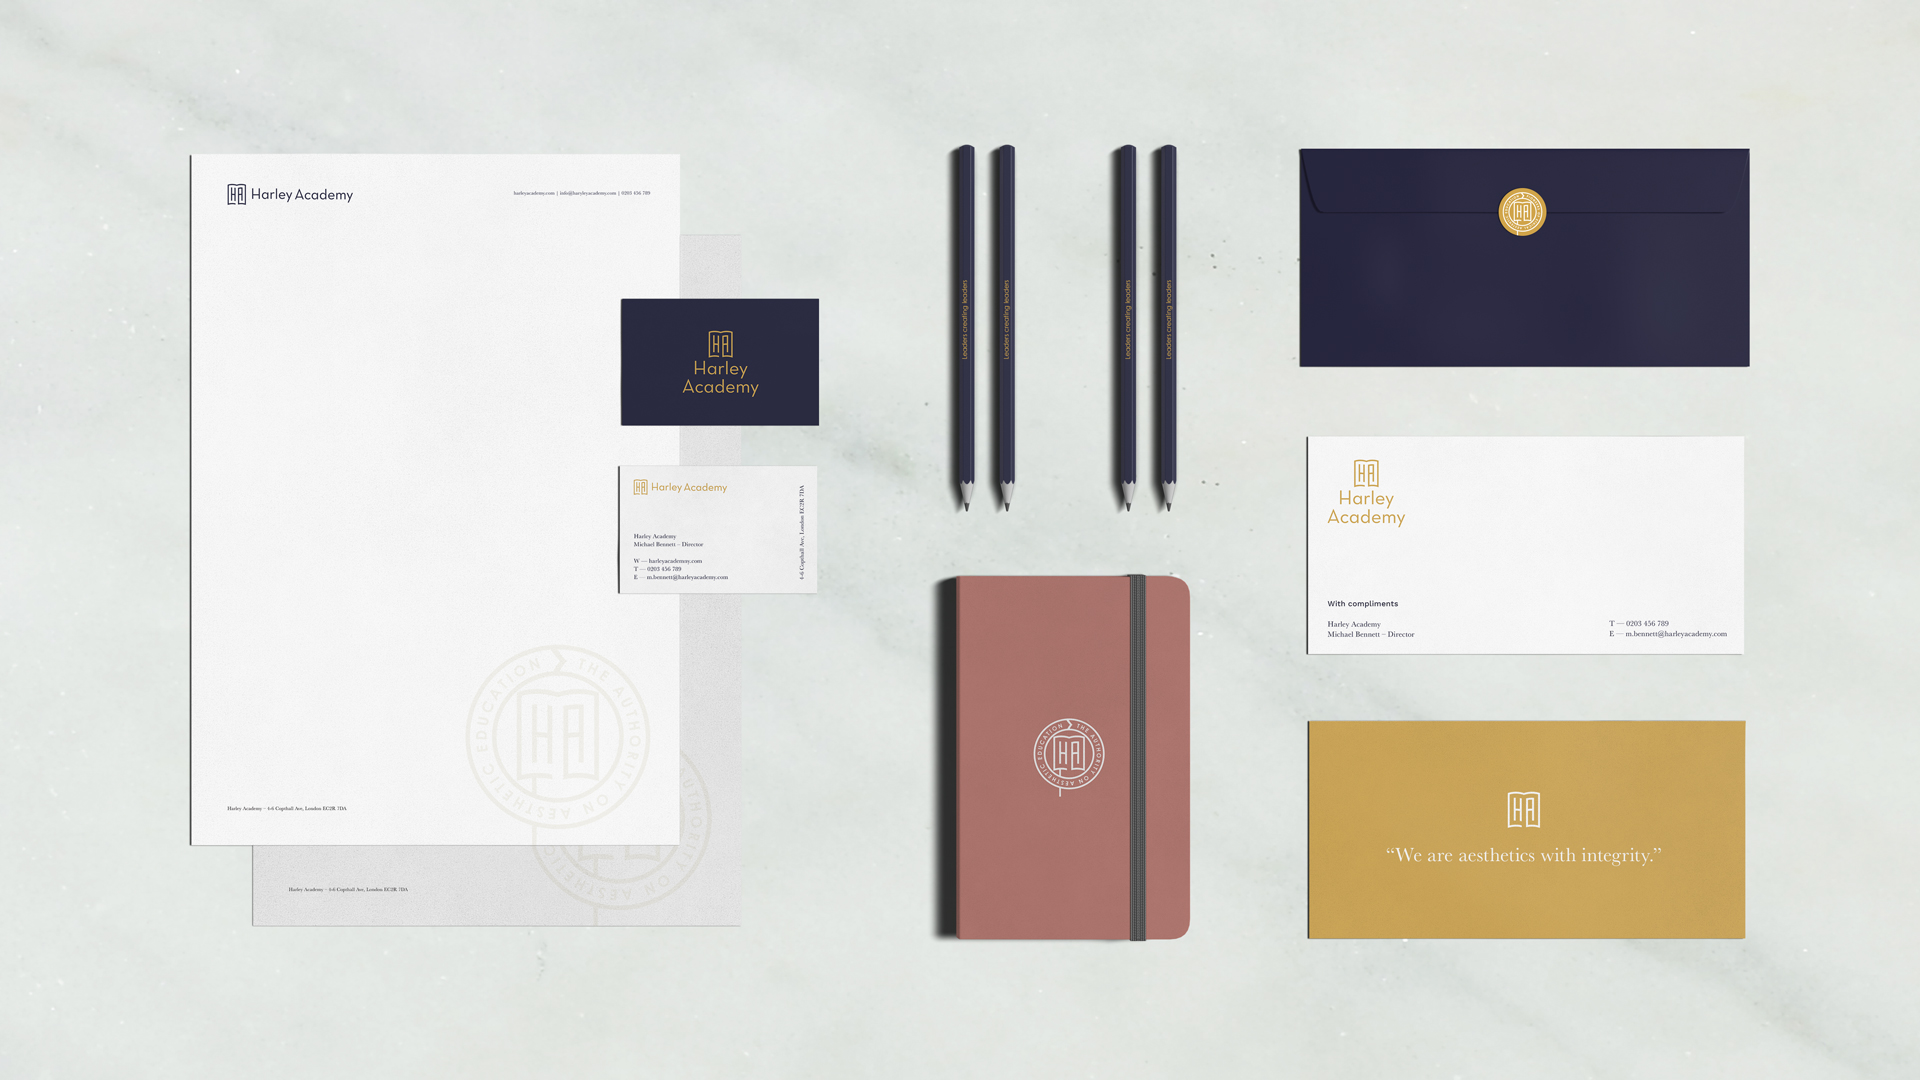 Mock up of stationary for Harley Academy- including letterheads, business cards, pencils, envelopes, notebooks and leaflets. The brand identity and graphic design by Barefaced Studios, Design Agency in Islington.